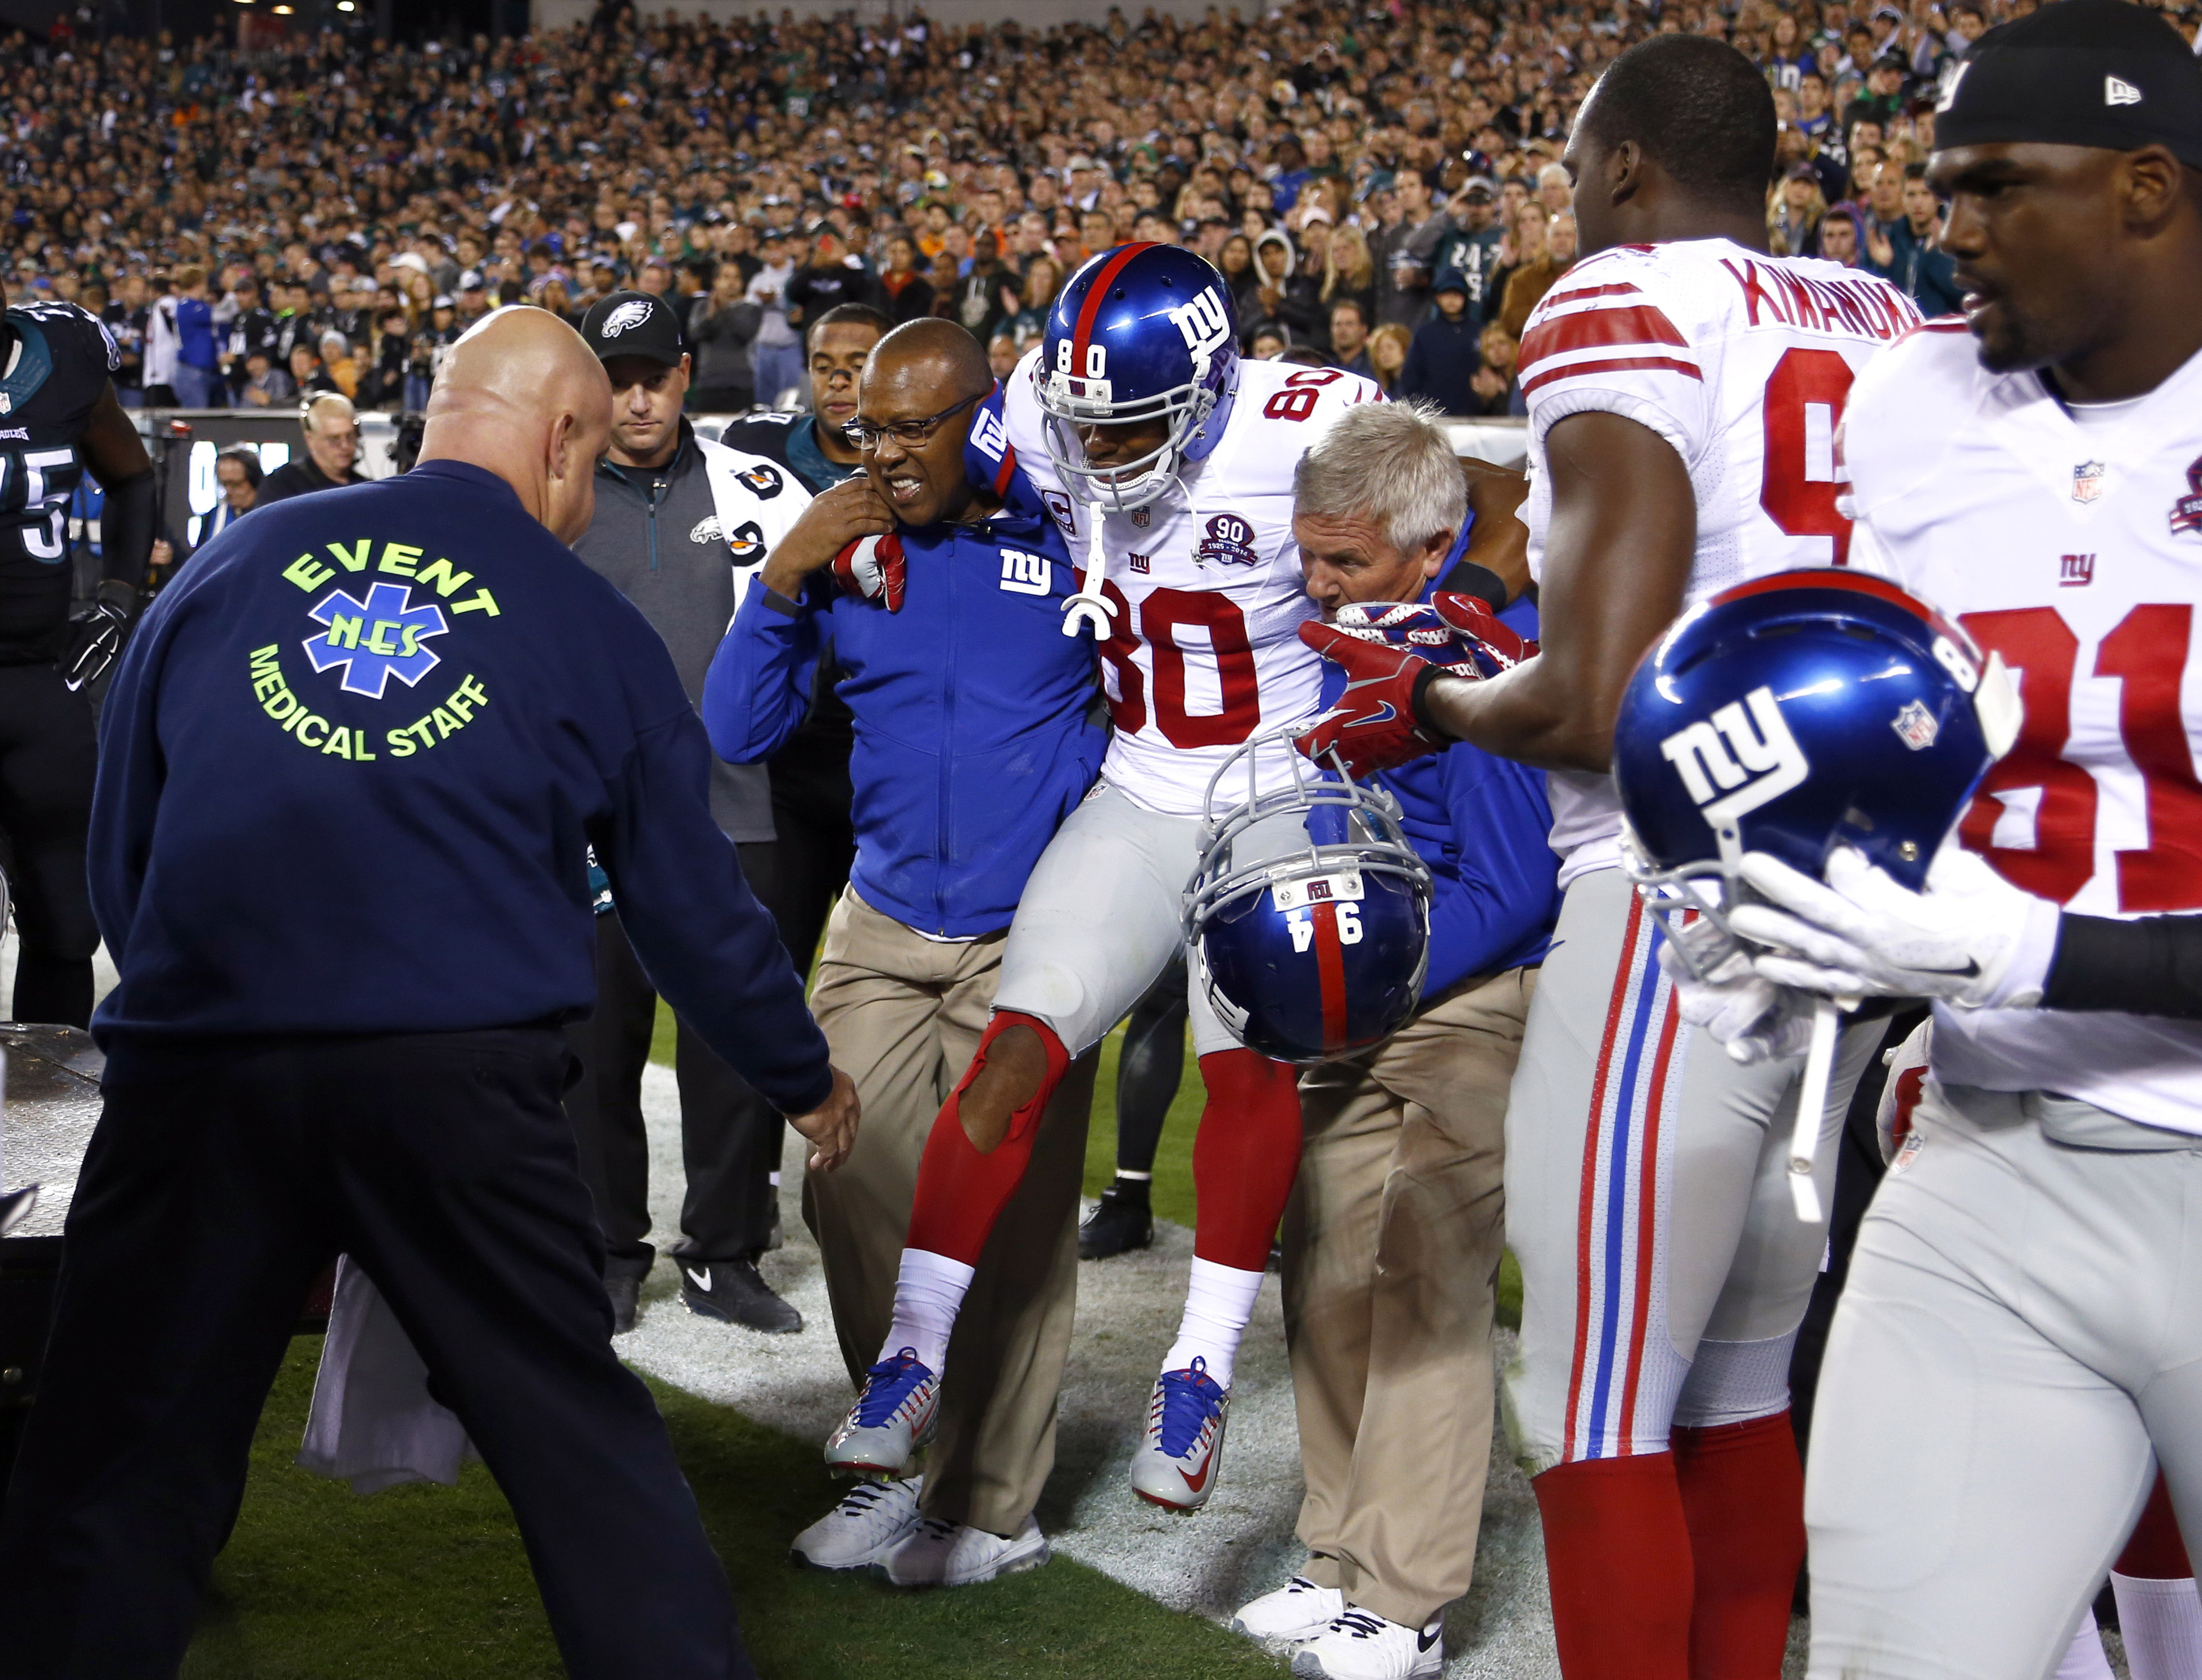 FILE - In this Oct. 12, 2014, file photo, New York Giants wide receiver Victor Cruz (80) is carried toward a cart after an injury during the second half of an NFL football game against the Philadelphia Eagles in Philadelphia. Sprains and strains. ACLs, MC